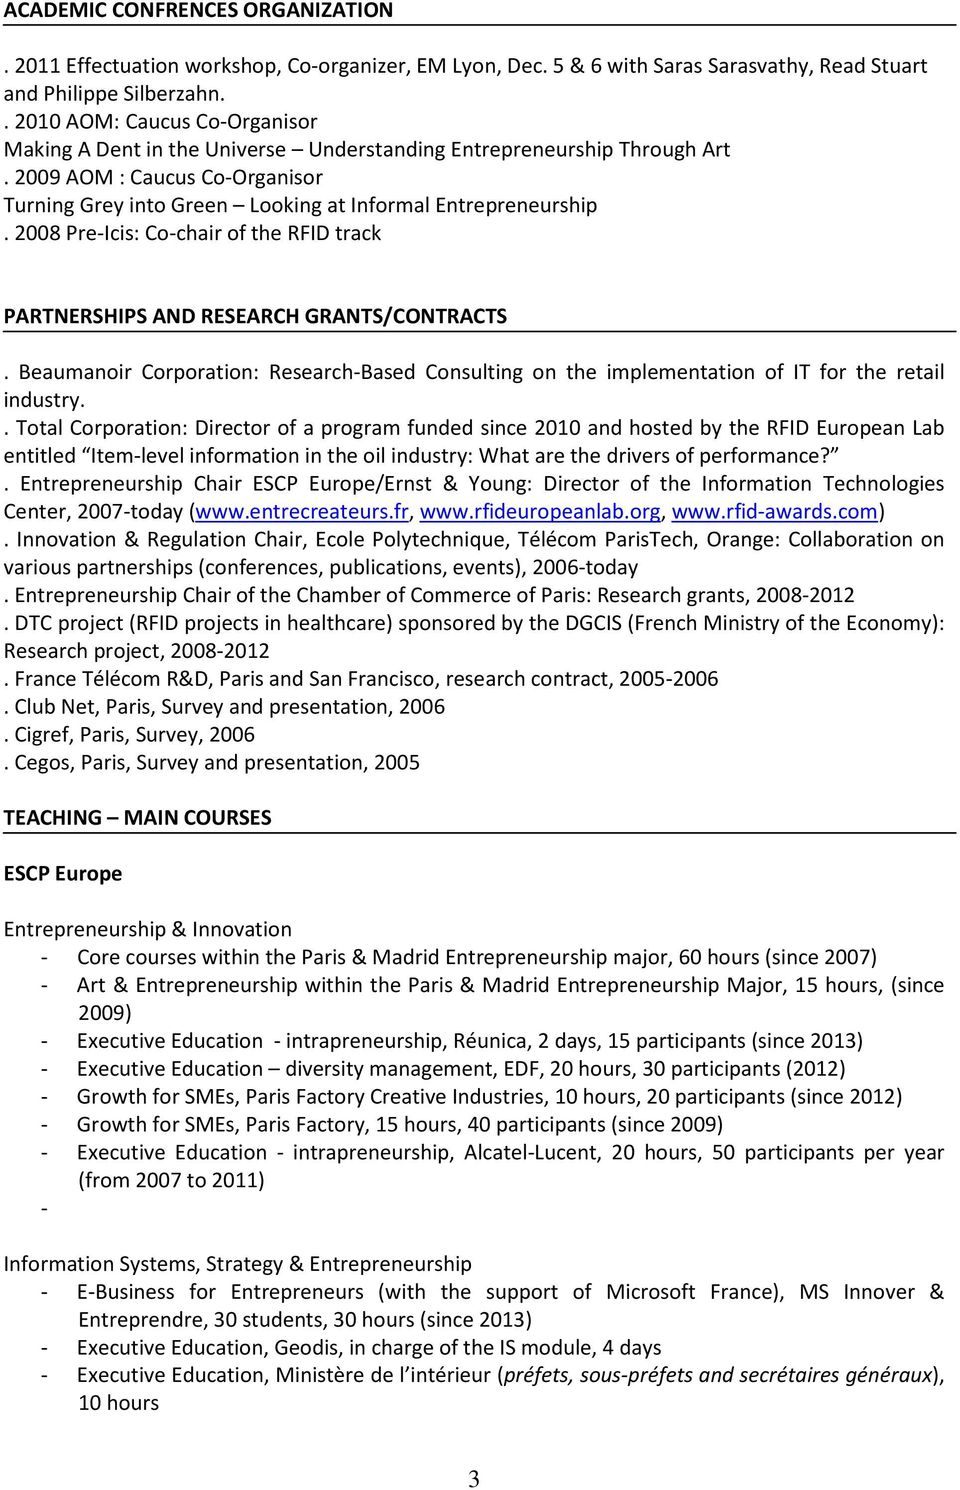 2008 Pre-Icis: Co-chair of the RFID track PARTNERSHIPS AND RESEARCH GRANTS/CONTRACTS. Beaumanoir Corporation: Research-Based Consulting on the implementation of IT for the retail industry.